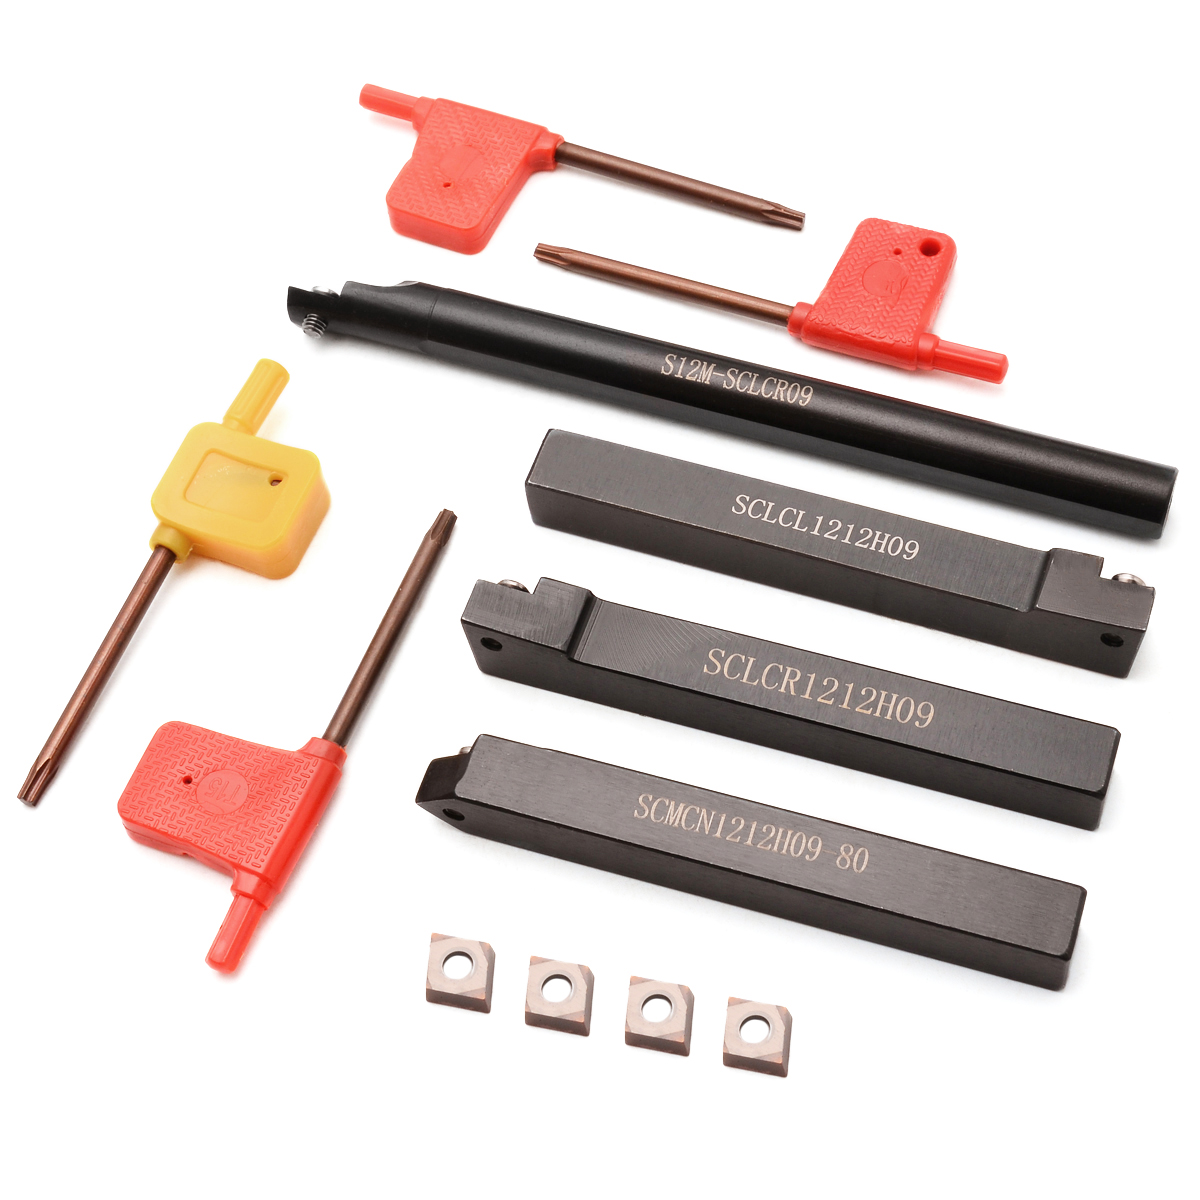 4pcs S12M-SCLCR09/SCLCR/SCLCL/SCMCN1212H09 Boring Bar 12mm Lathe Index Turning Tool Holder + 4pcs CCMT 09T3 Insert with Wrenches s20r sclcr09 20 200mm boring bar turning tool holder 10 ccmt09t308 pm4225